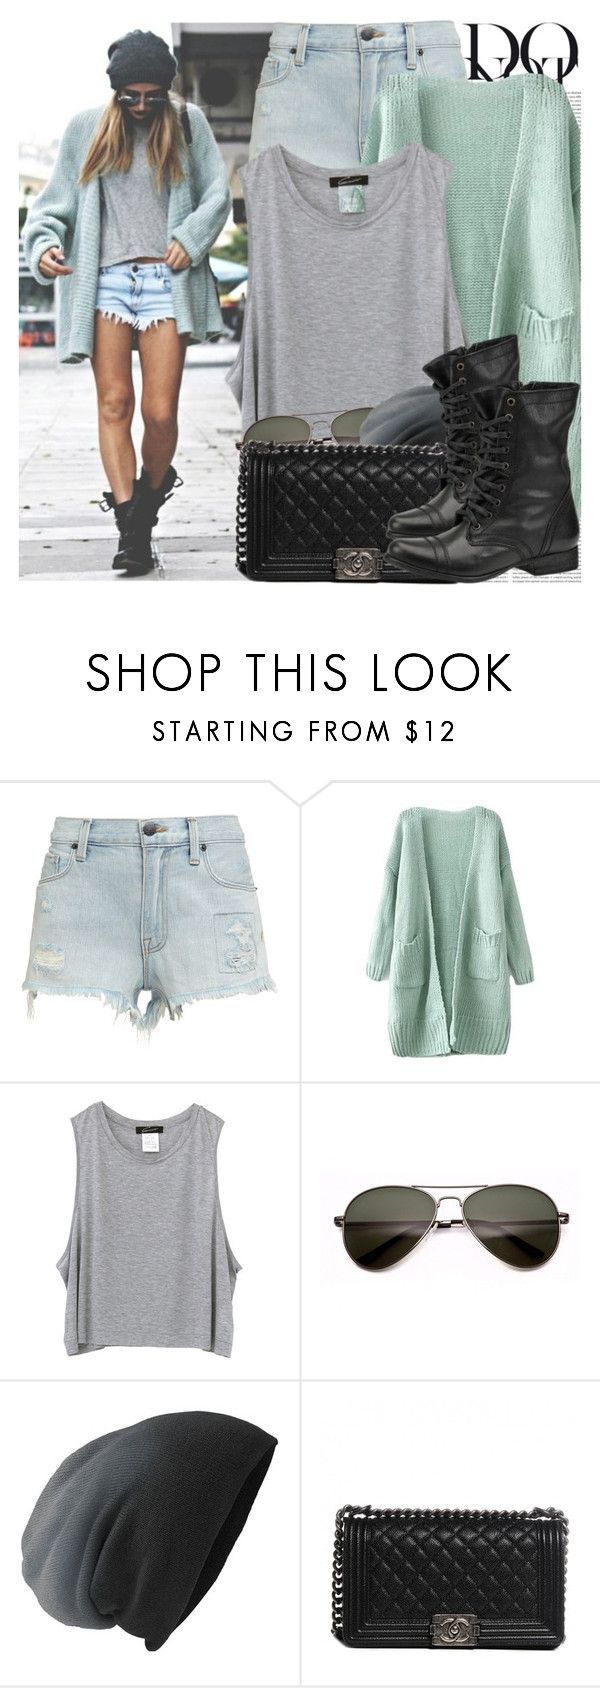 """""""1946. Street Style"""" by chocolatepumma ❤ liked on Polyvore featuring Anja, Oris, Genetic Denim, Chanel, Steve Madden, StreetStyle, edgy, CasualChic and StreetChic"""